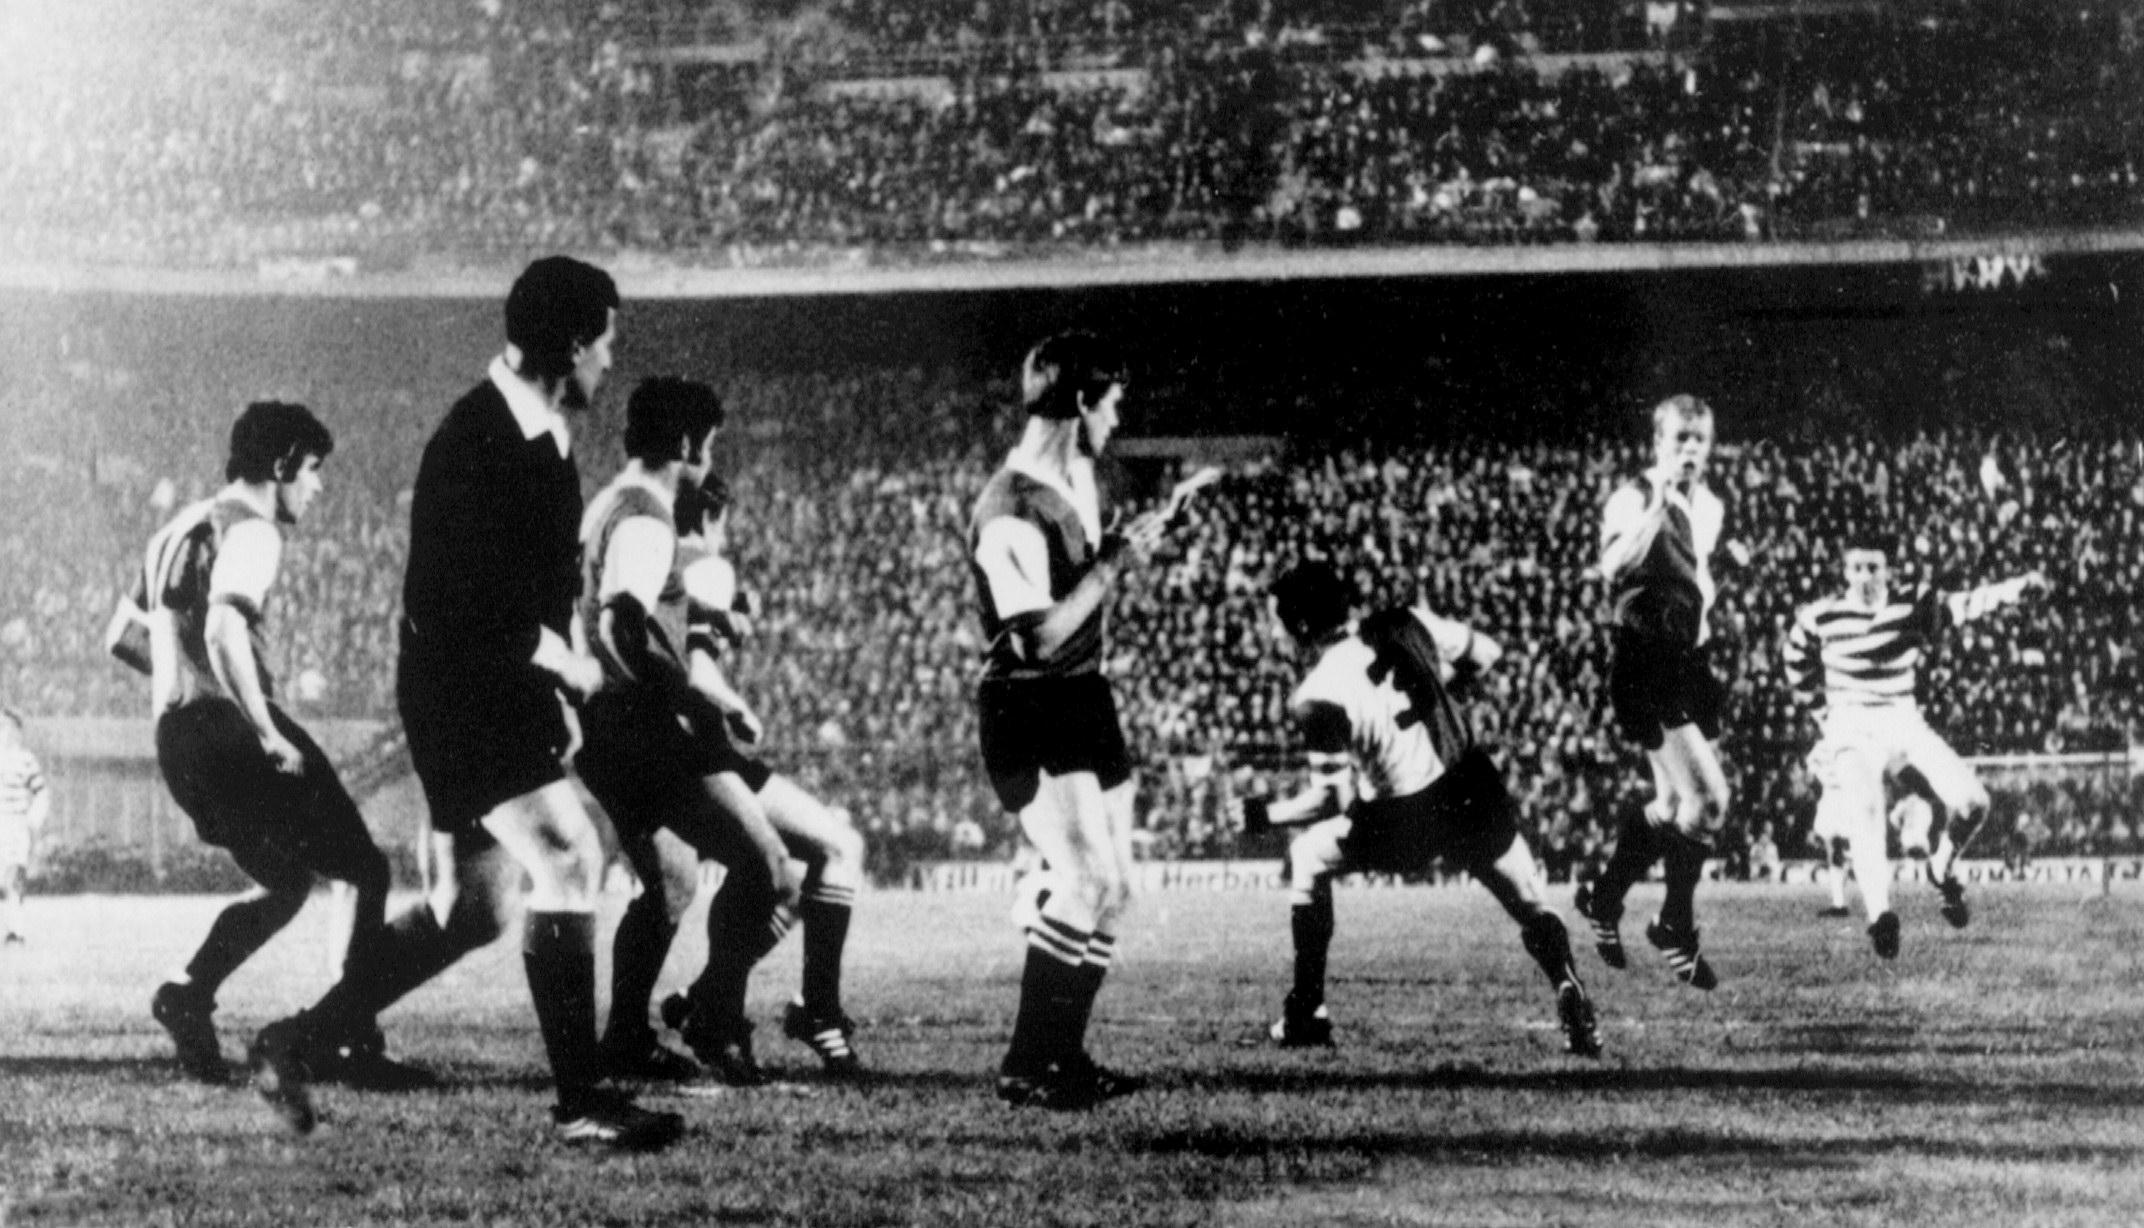 Even the referee had to duck out of the way when Tommy Gemmell fired in one of his piledrivers, as witnessed in this photo of the left-back's goal against Feyenoord in the 19710 European Cup Final, which the Dutch side won 2-1.